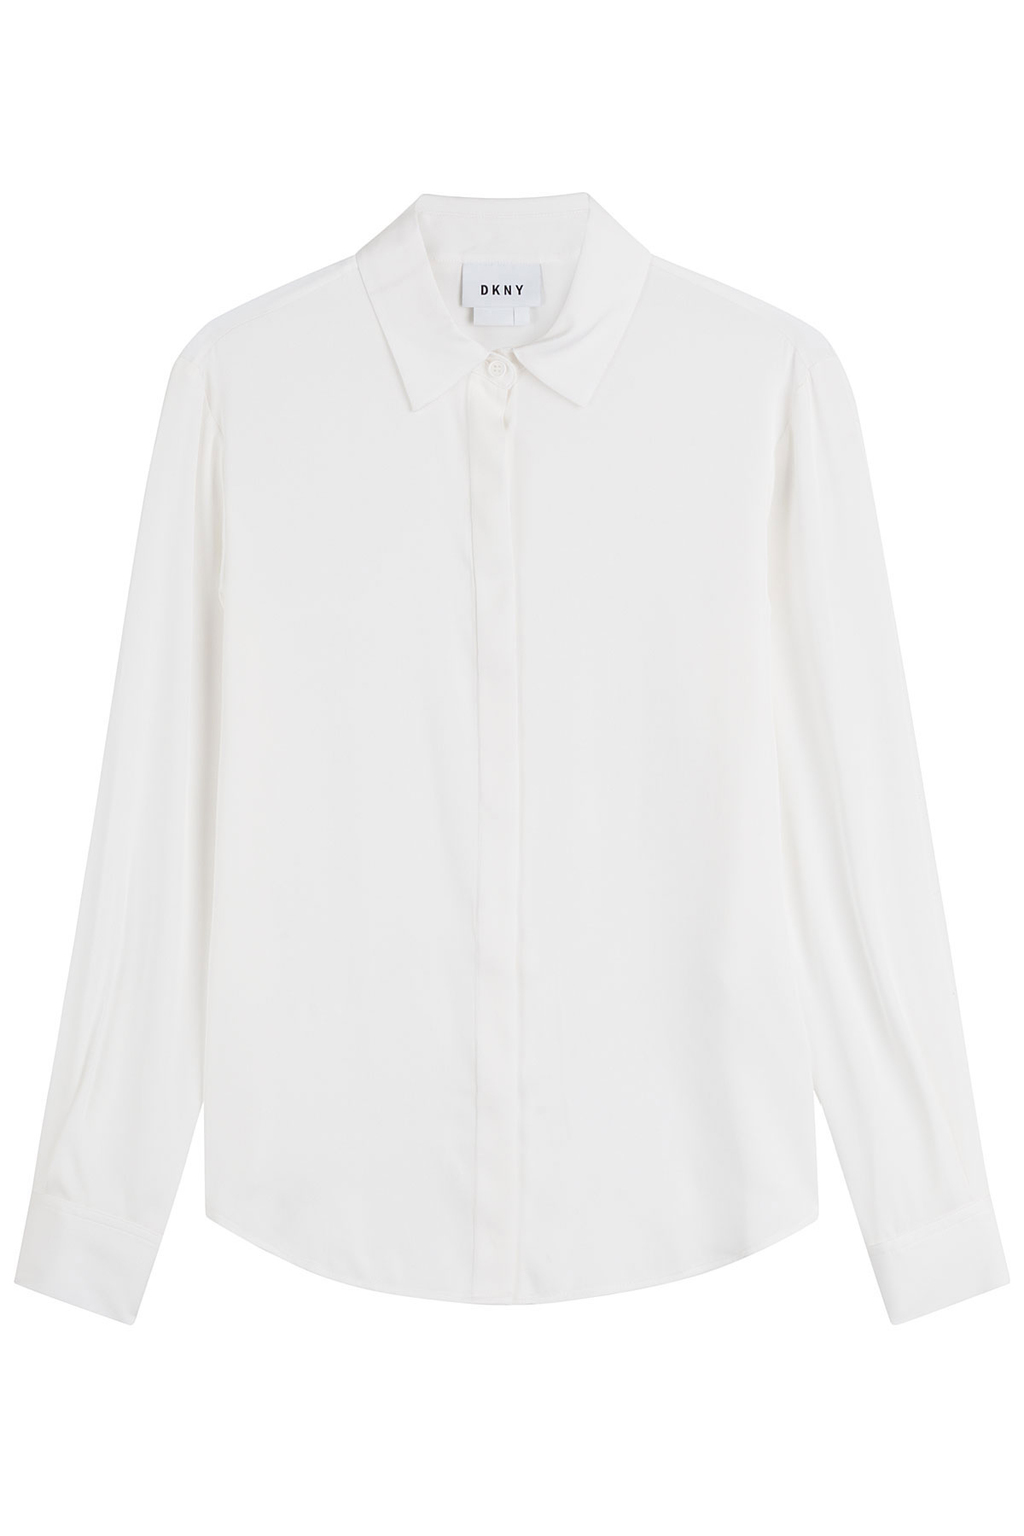 Silk Shirt - neckline: shirt collar/peter pan/zip with opening; pattern: plain; style: shirt; predominant colour: white; occasions: evening; length: standard; fibres: silk - 100%; fit: body skimming; sleeve length: long sleeve; sleeve style: standard; texture group: silky - light; pattern type: fabric; season: s/s 2016; wardrobe: event